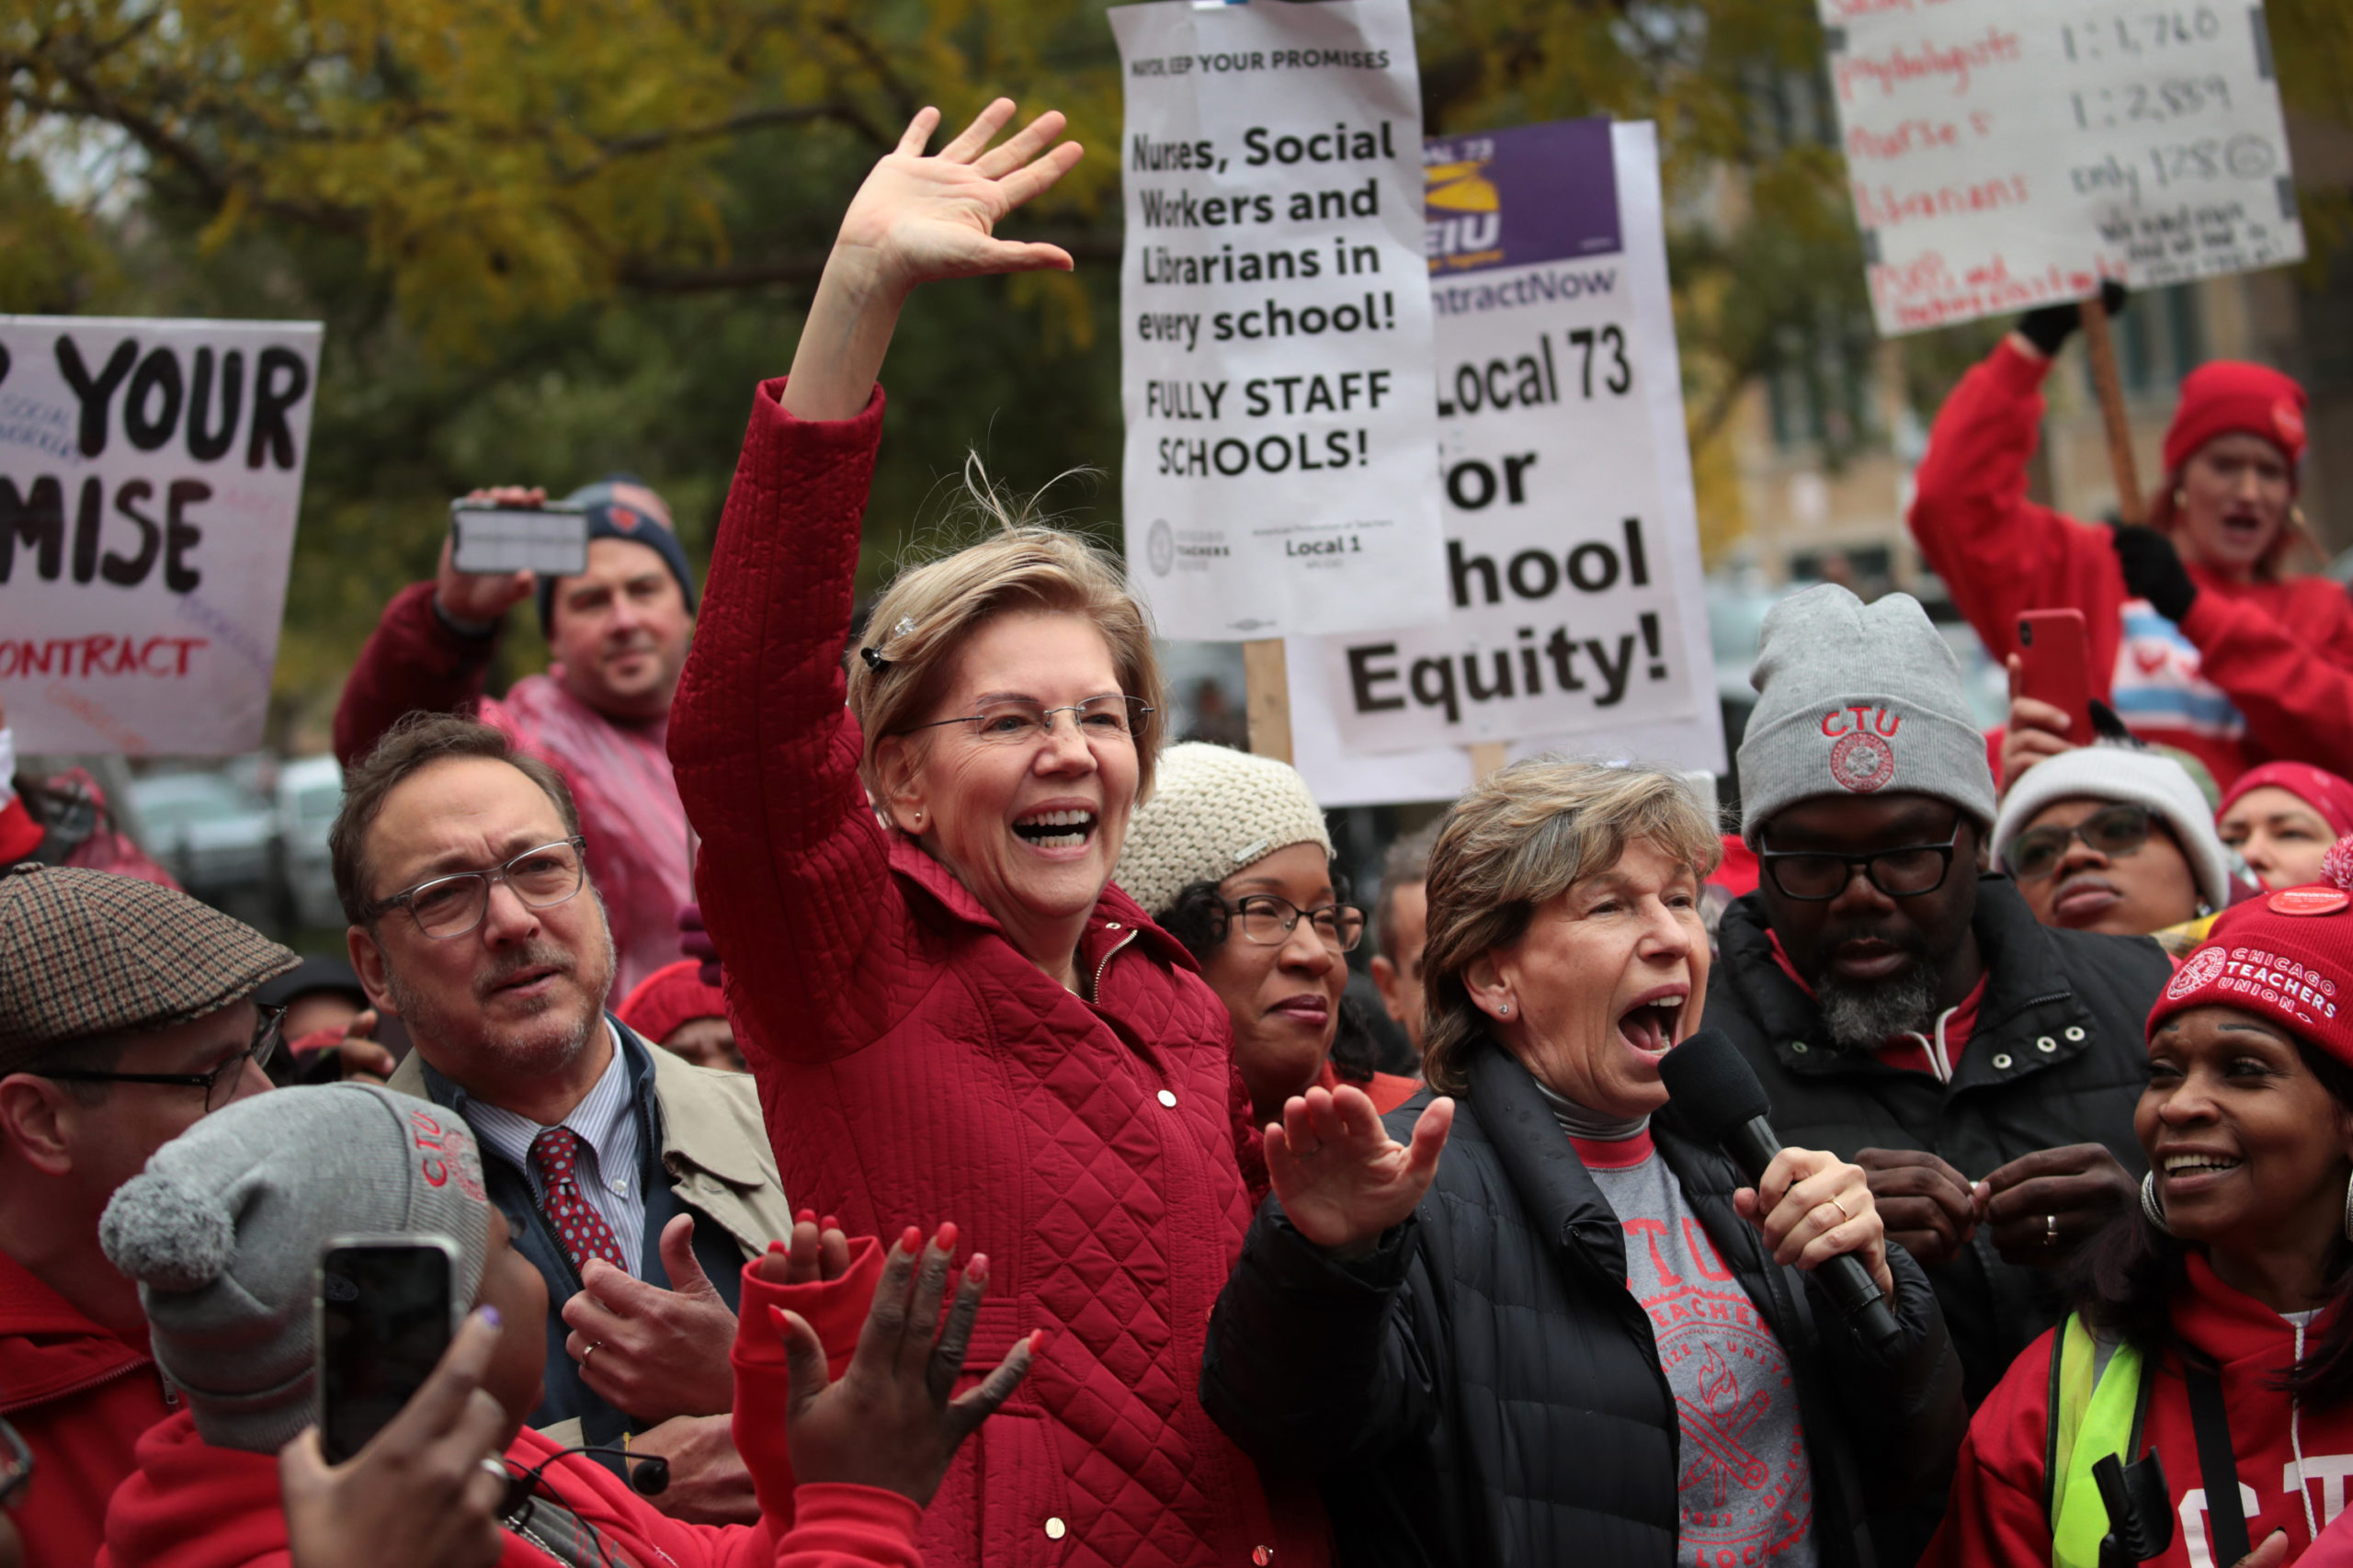 CHICAGO, ILLINOIS - OCTOBER 22: Democratic presidential candidate Sen. Elizabeth Warren (D-MA) (L) and American Federation of Teachers (AFT) president Randi Weingarten visit with striking Chicago teachers at Oscar DePriest Elementary School on October 22, 2019 in Chicago, Illinois. (Photo by Scott Olson/Getty Images)